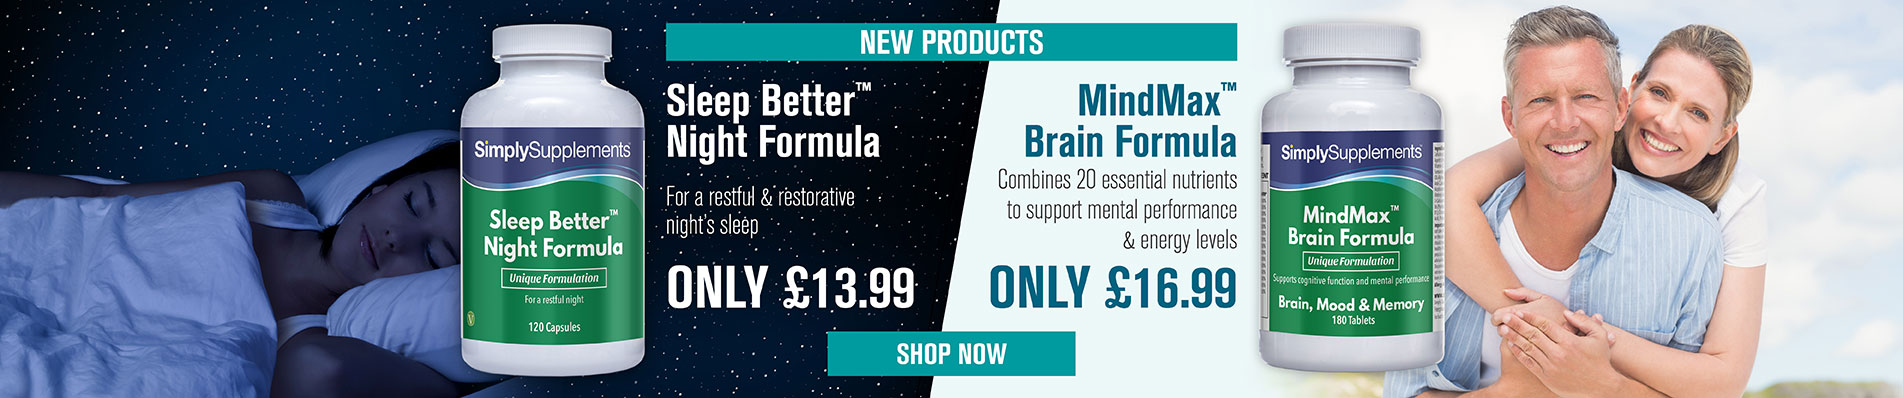 New Sleep Better Formula and MindMax Brain Formula